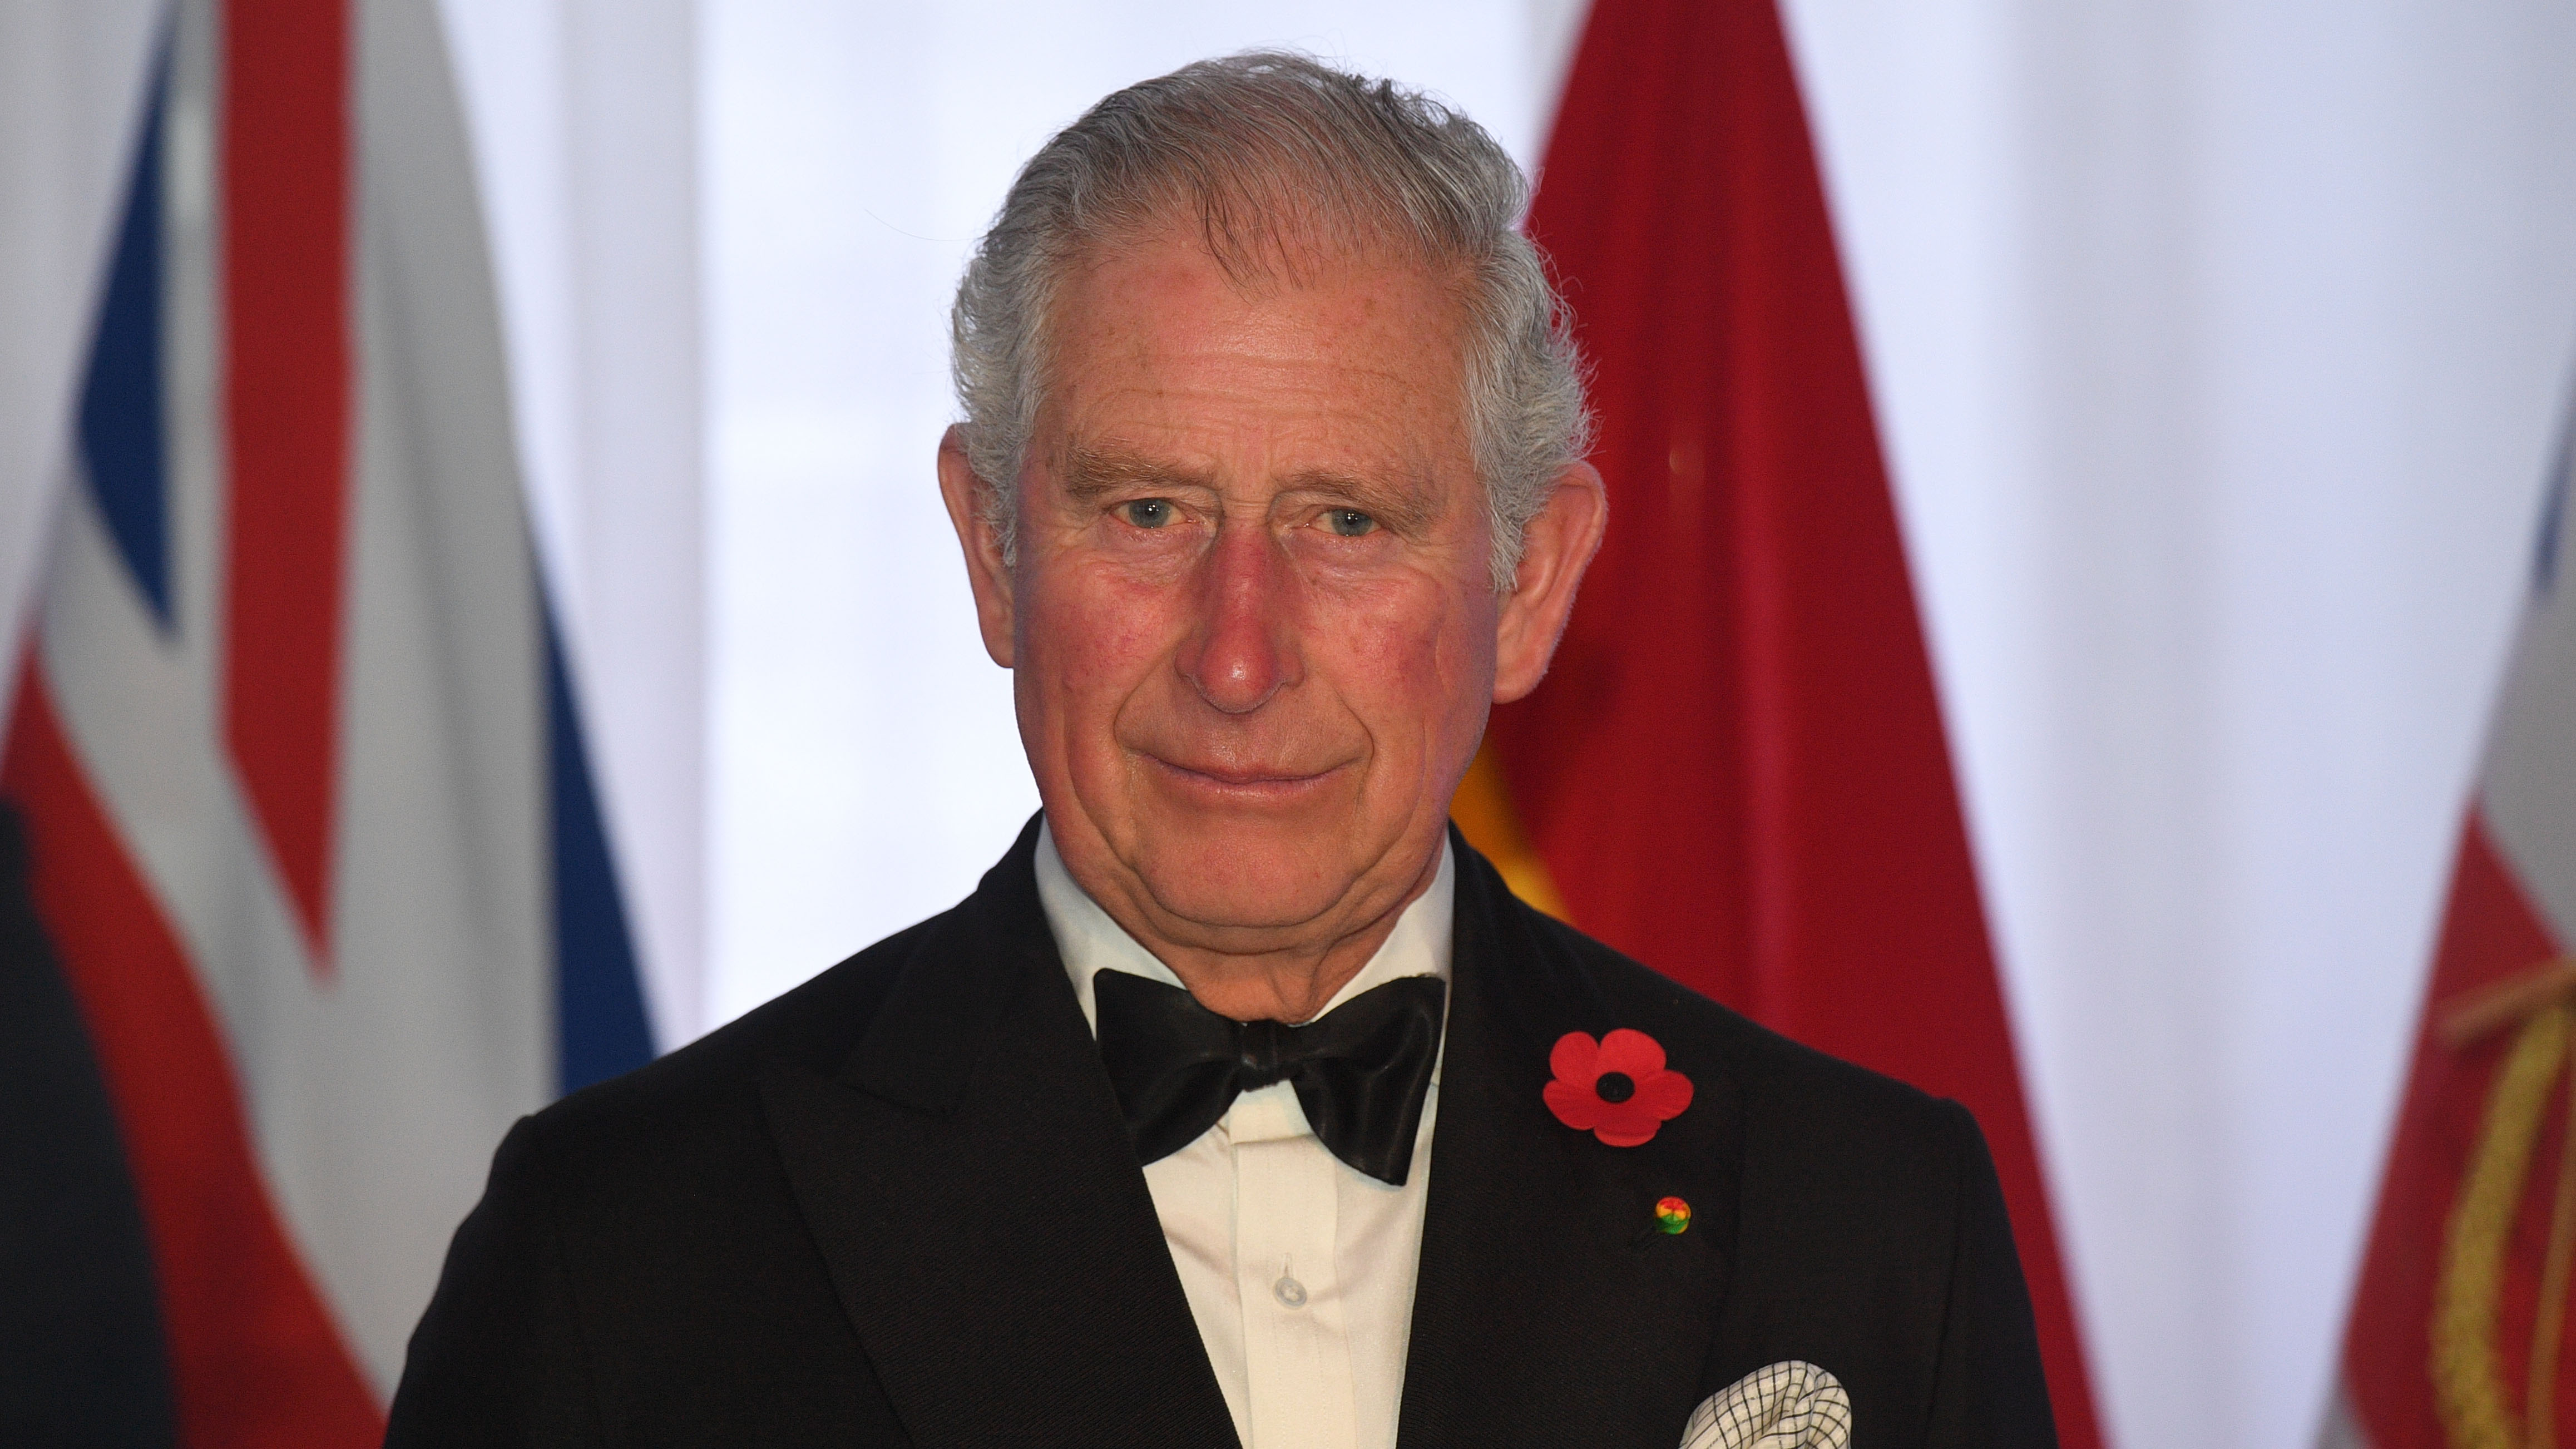 Prince Charles Will Keep His Political Views To Himself